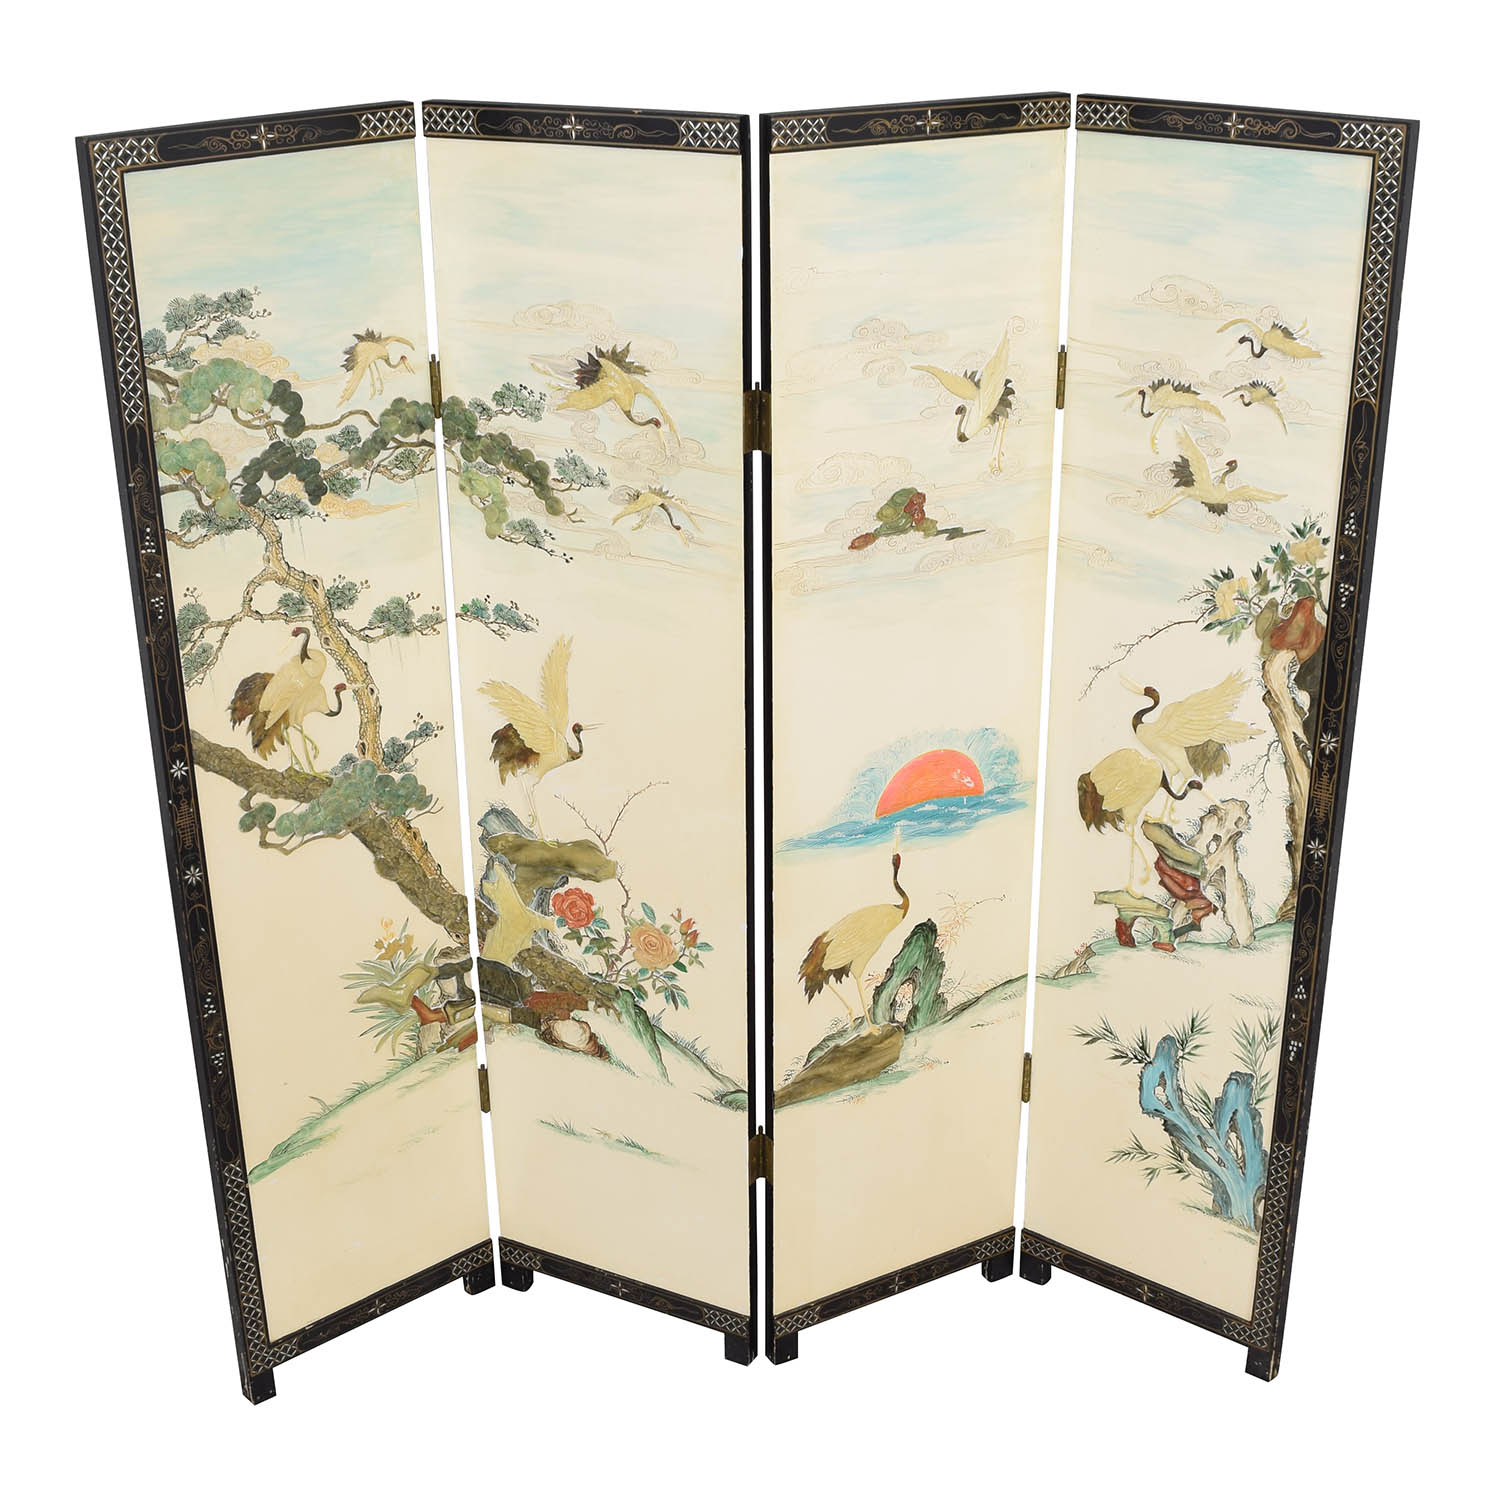 Chinese Style Panel Screen Divider / Decor